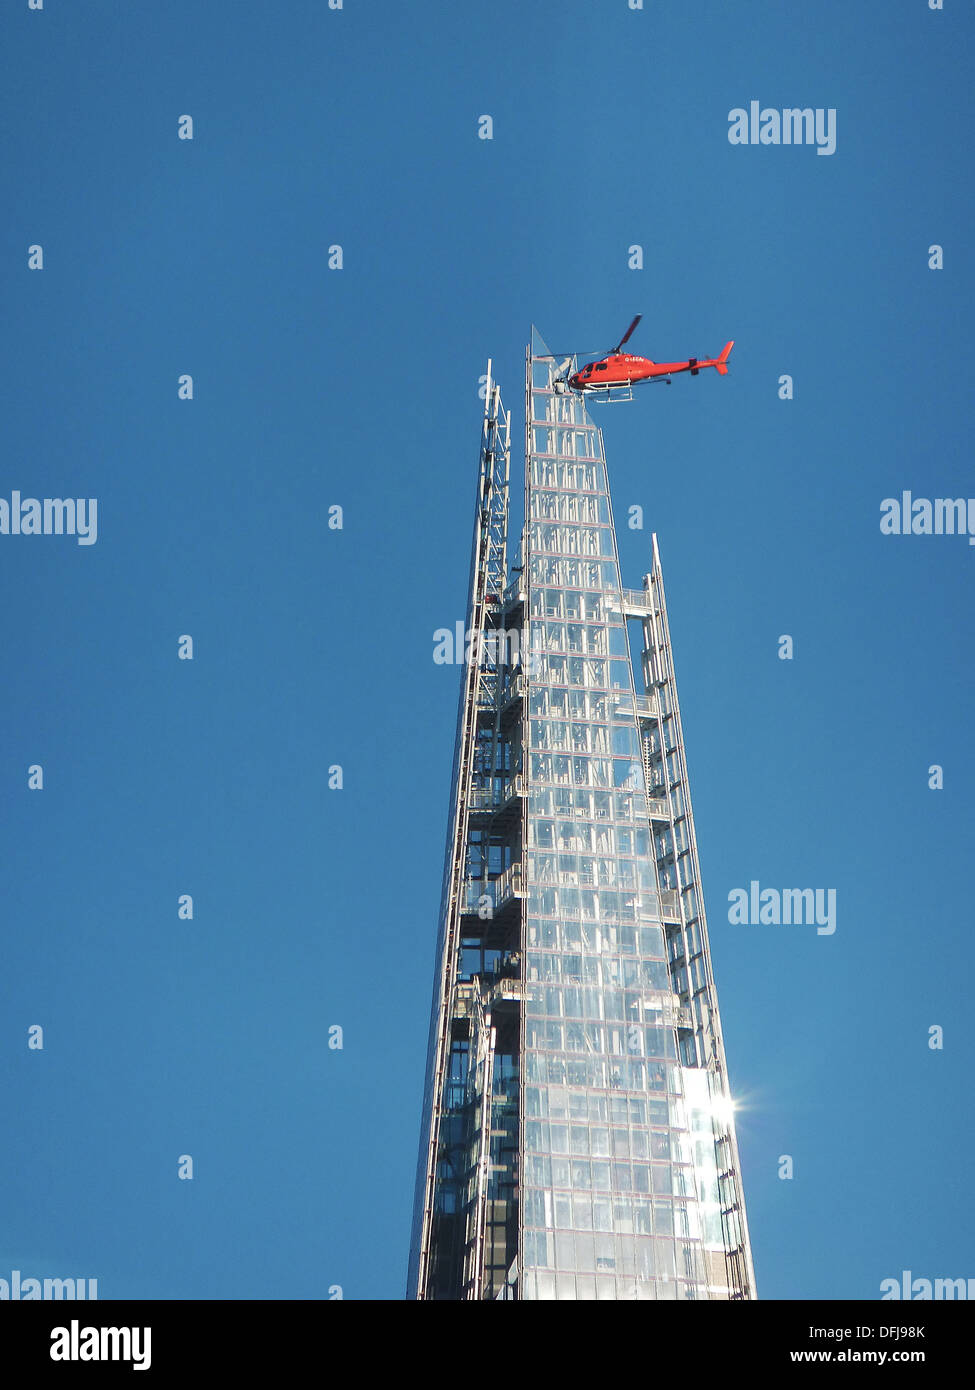 optic illusion suggesting a helicopter crashing into a glass building in London - Stock Image